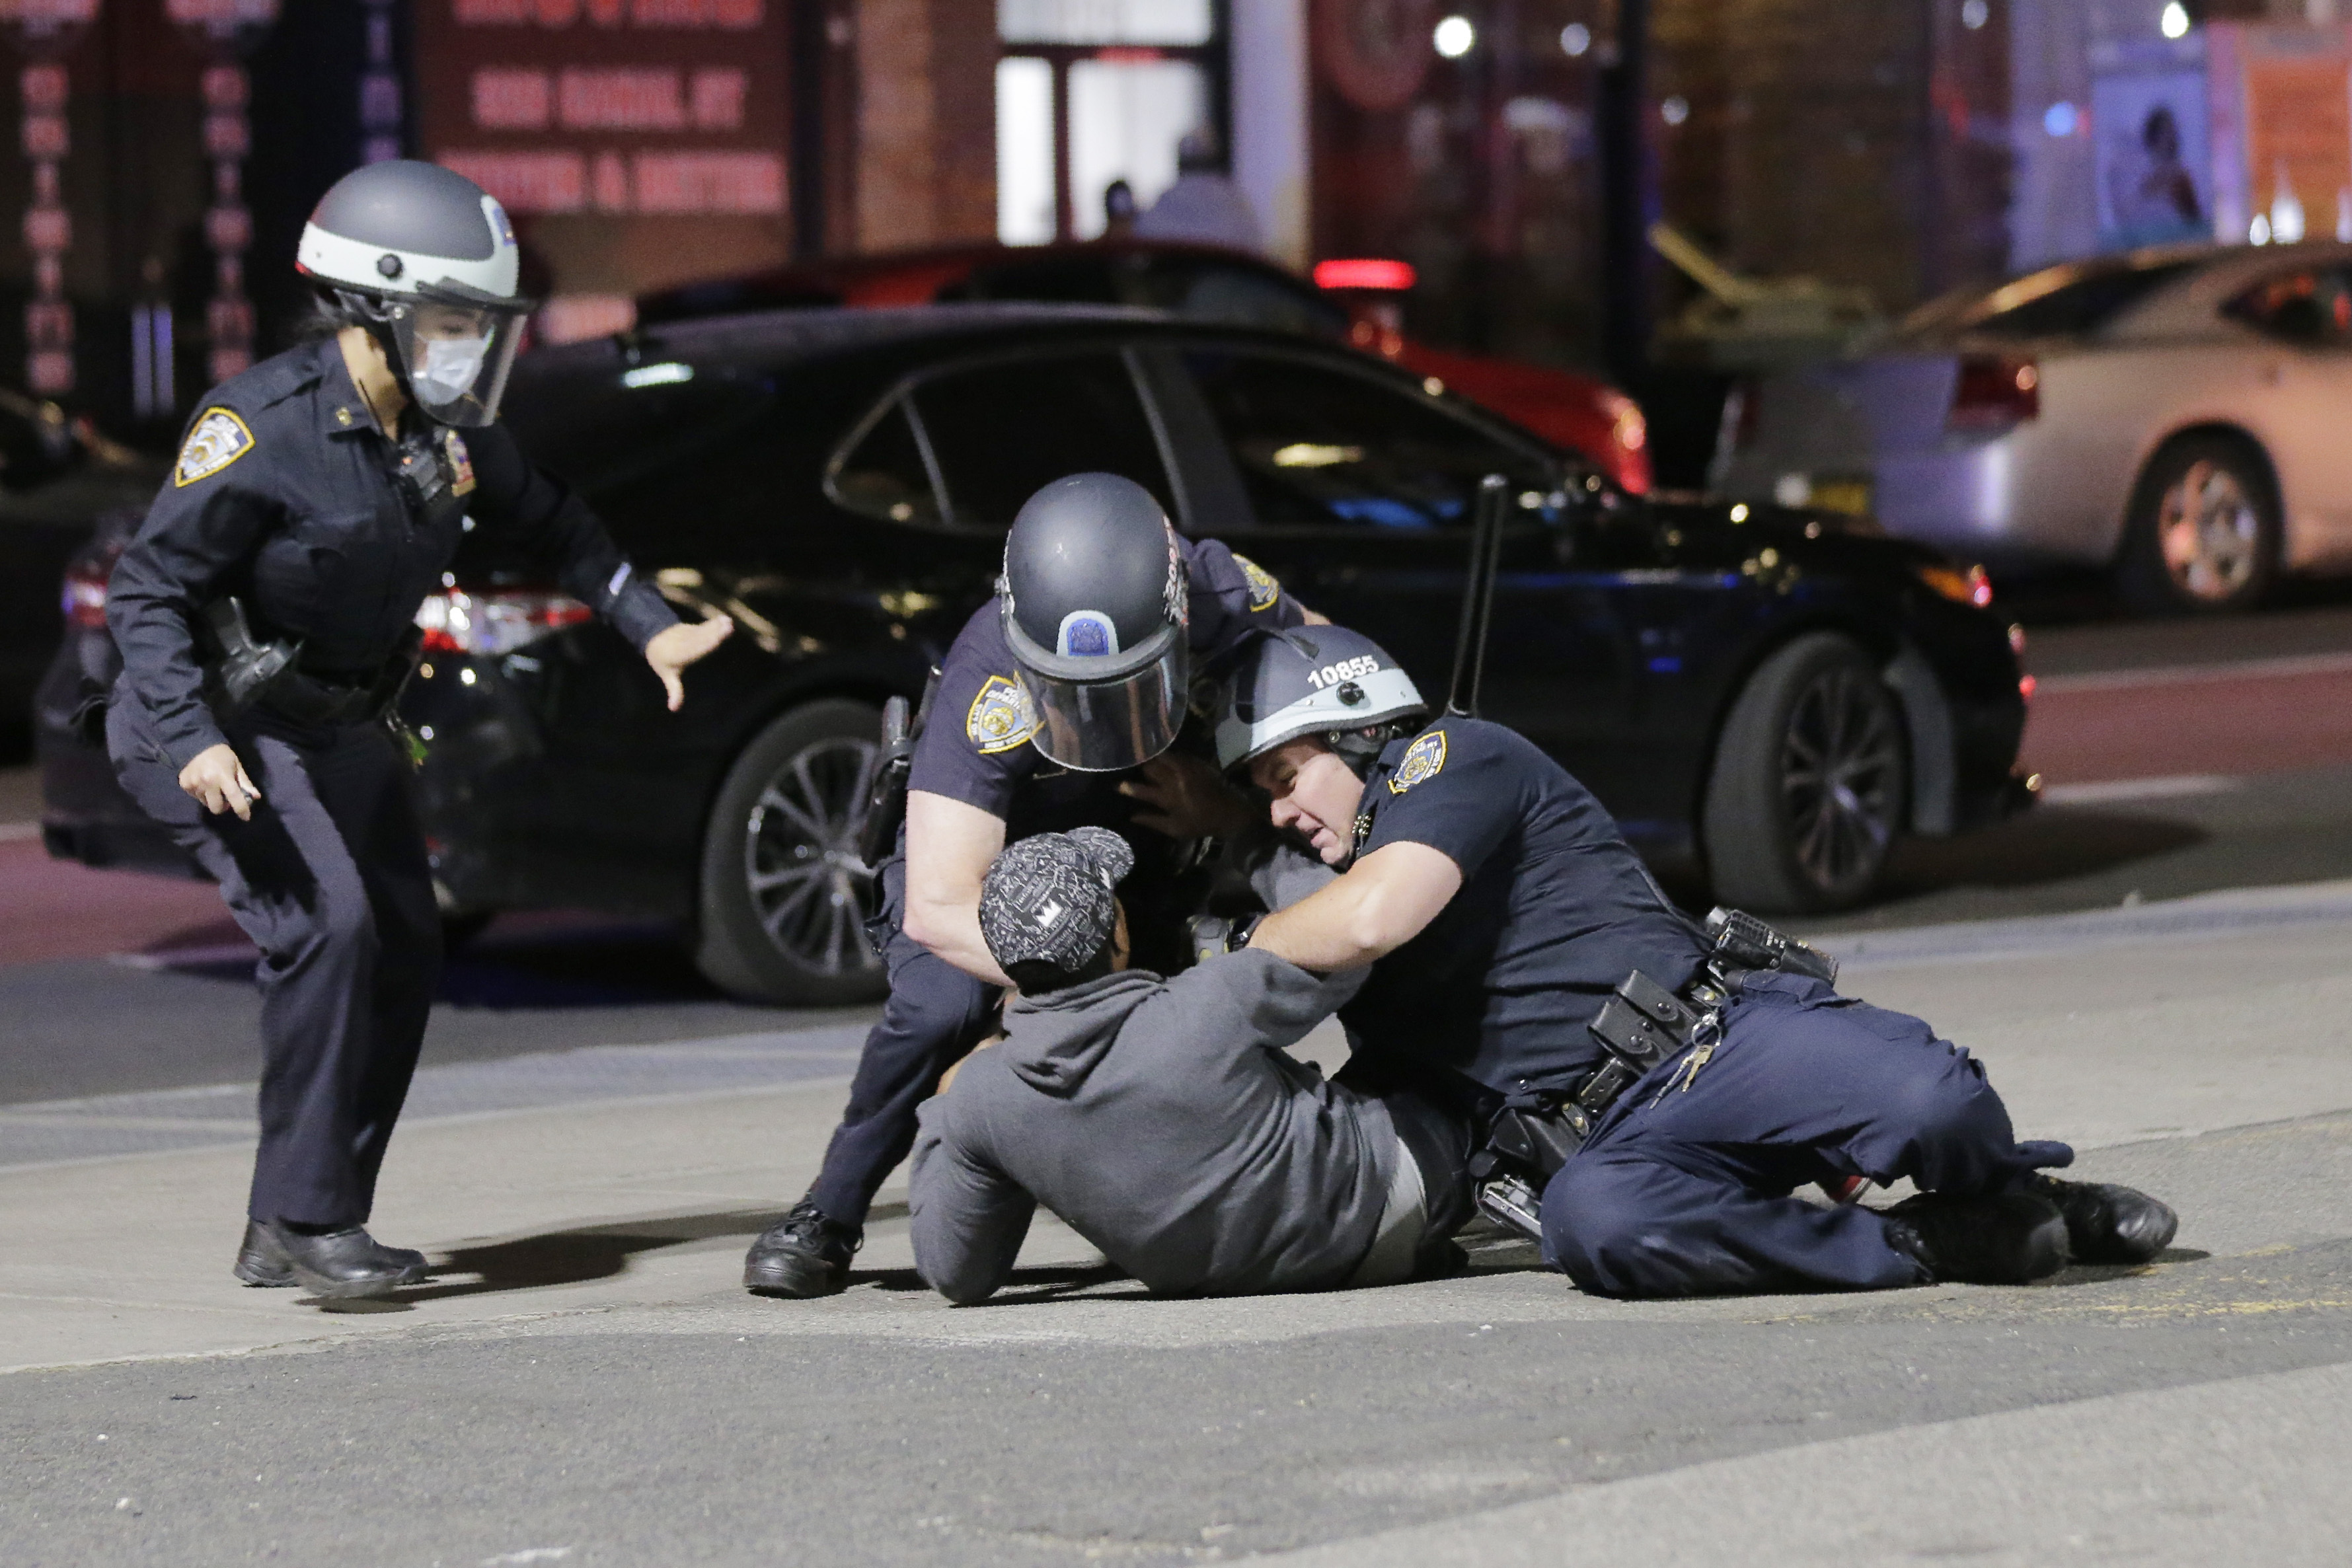 Police officers tackle a suspect trying to escape in New York, Monday, June 1, 2020. A fourth day of protests against police brutality kept New York City on edge Sunday, as thousands of people marched and many protesters and officers tried to keep the peace after days of unrest that left police cars burned and hundreds of people under arrest. (AP Photo/Seth Wenig)